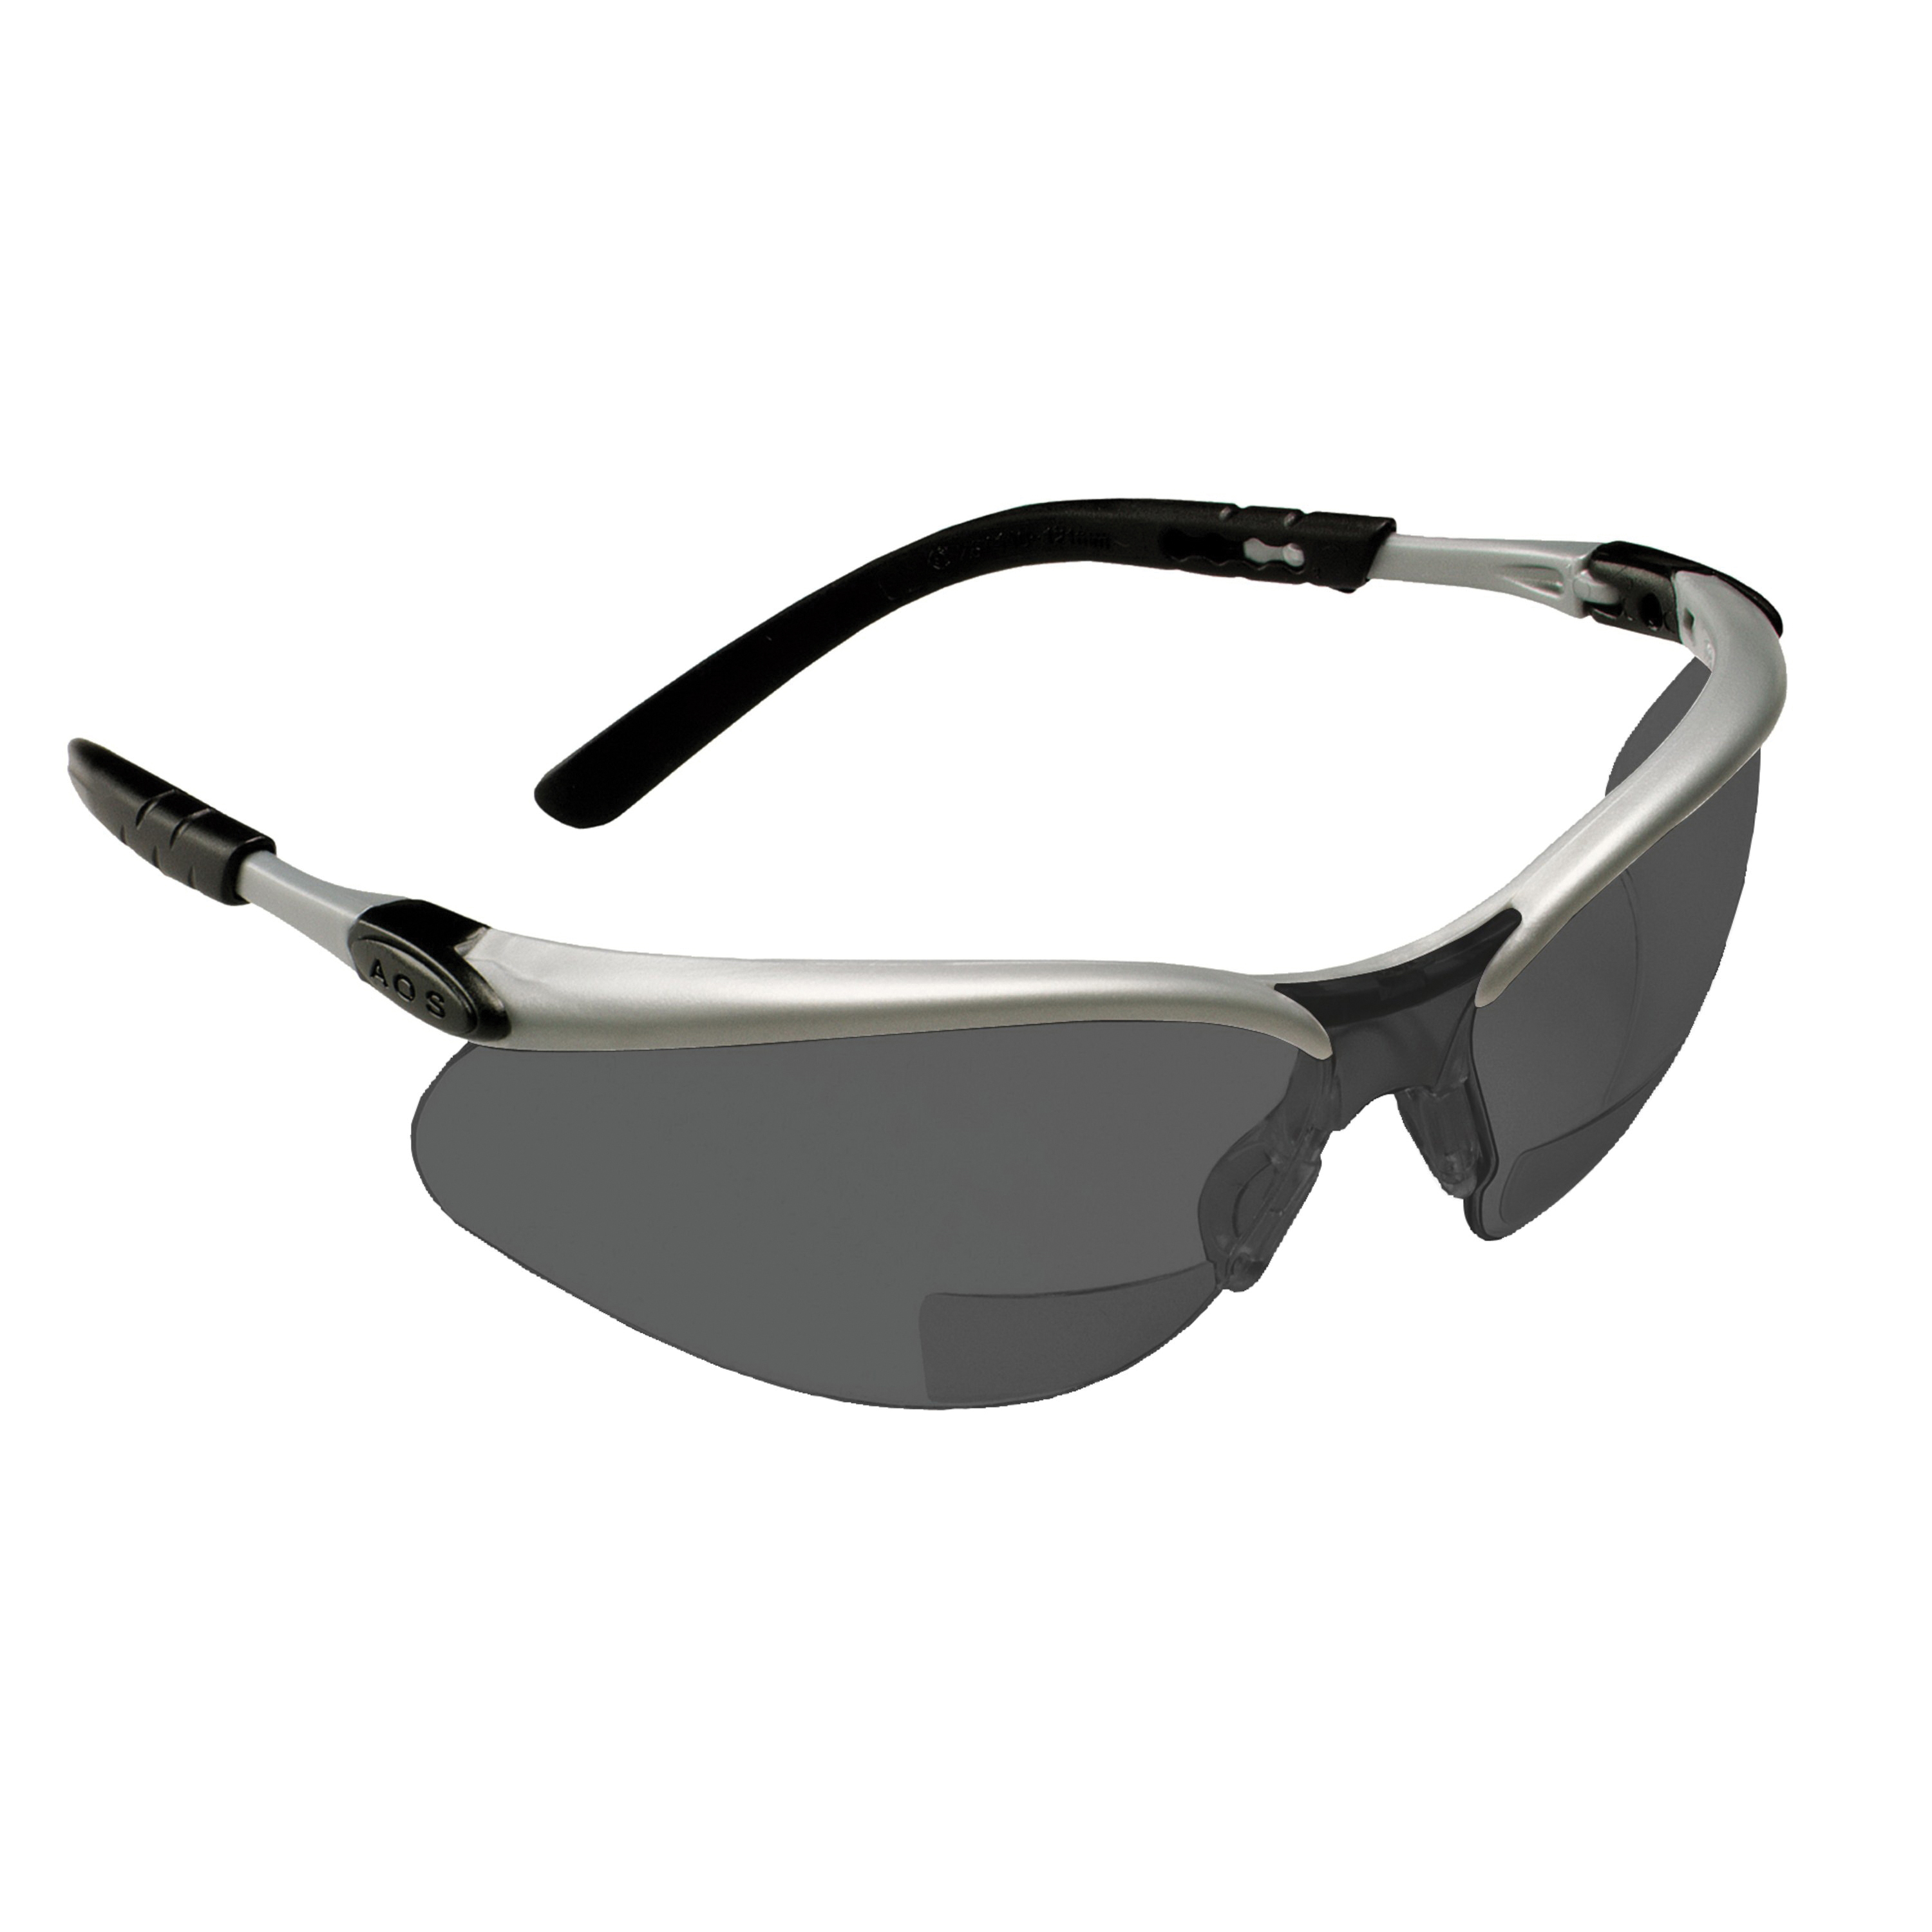 3M™ BX™ 078371-11379 Reader Protective Eyewear, +2.5 Diopter, Gray Lens, Black/Silver, Plastic Frame, Polycarbonate Lens, 99.9 % UV Protection, ANSI Z87.1-2015